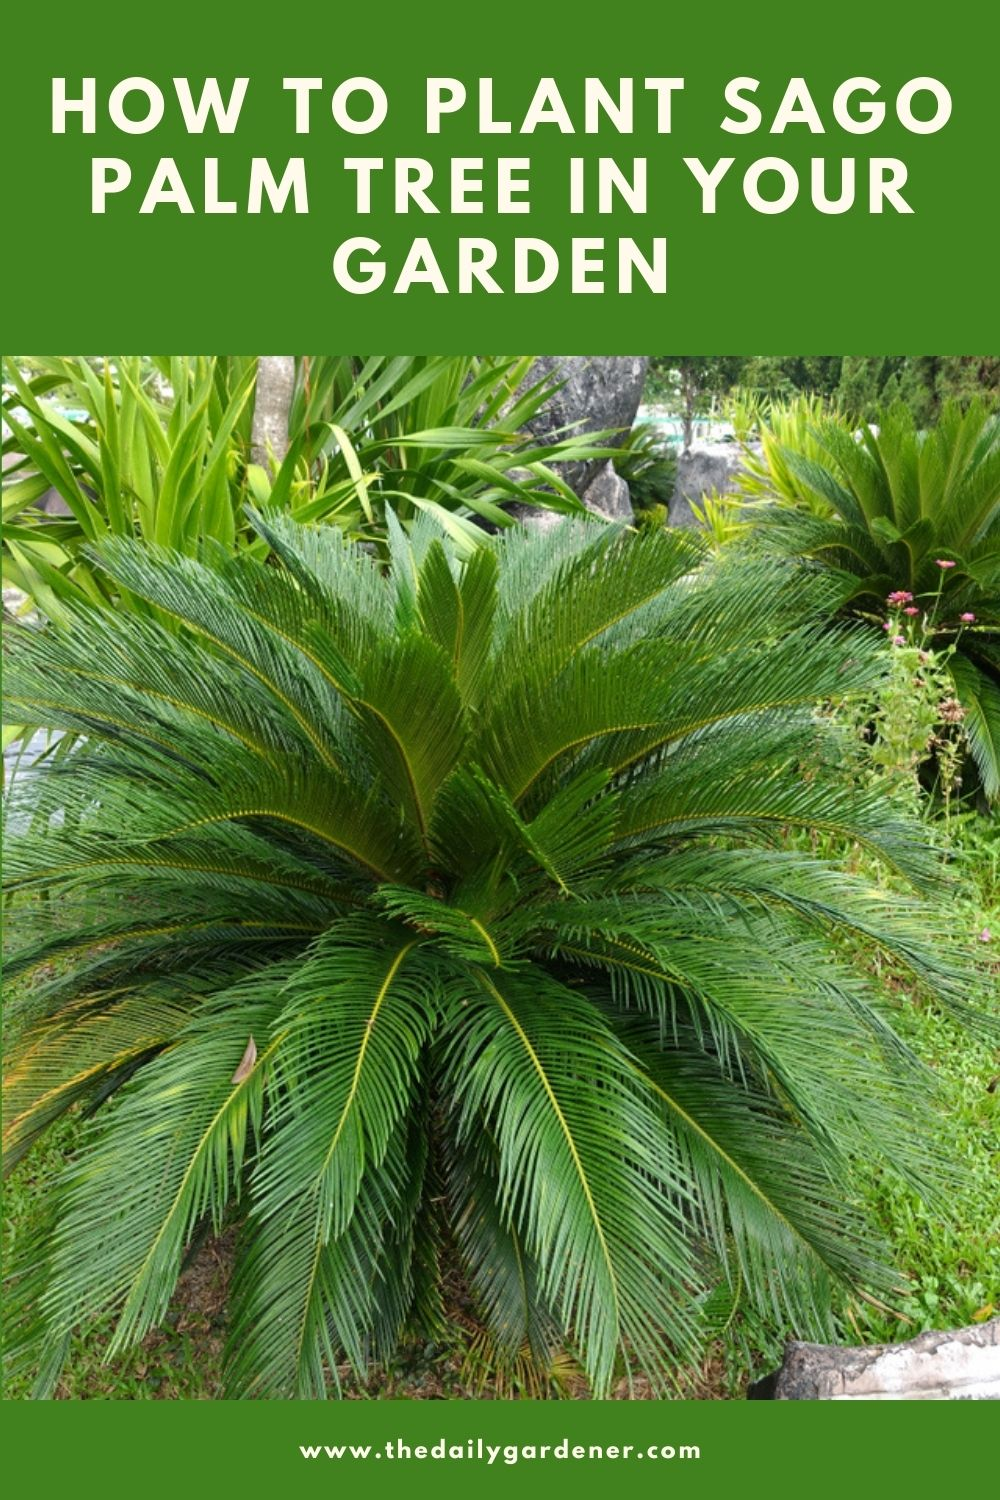 How to Plant Sago Palm Tree in Your Garden (Tricks to Care!) 1